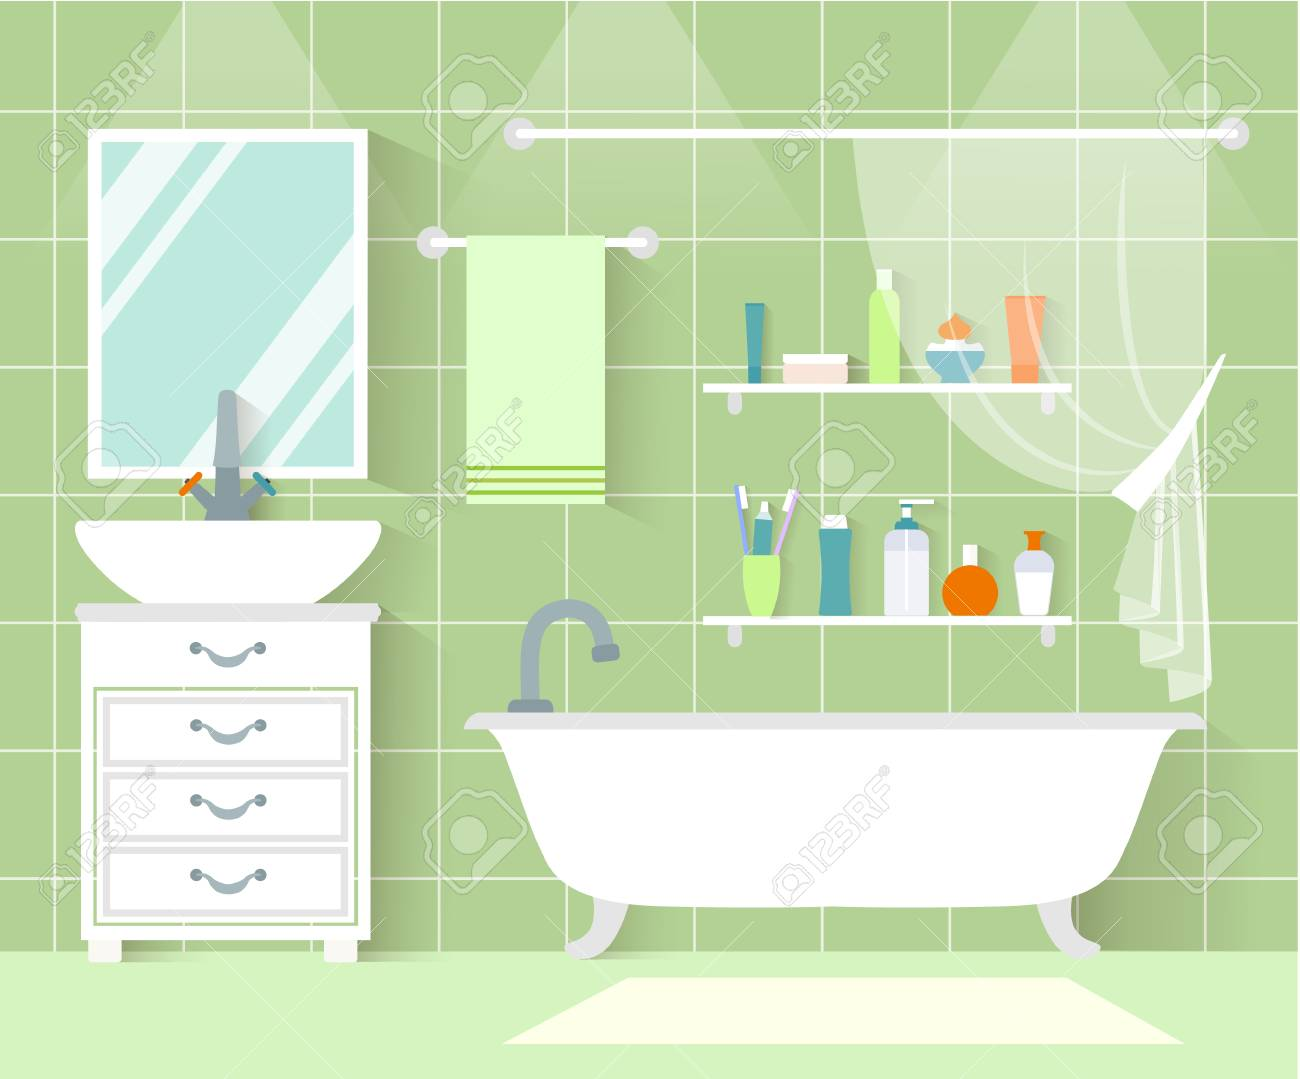 A Vector bathroom front view. Interior design in flat style